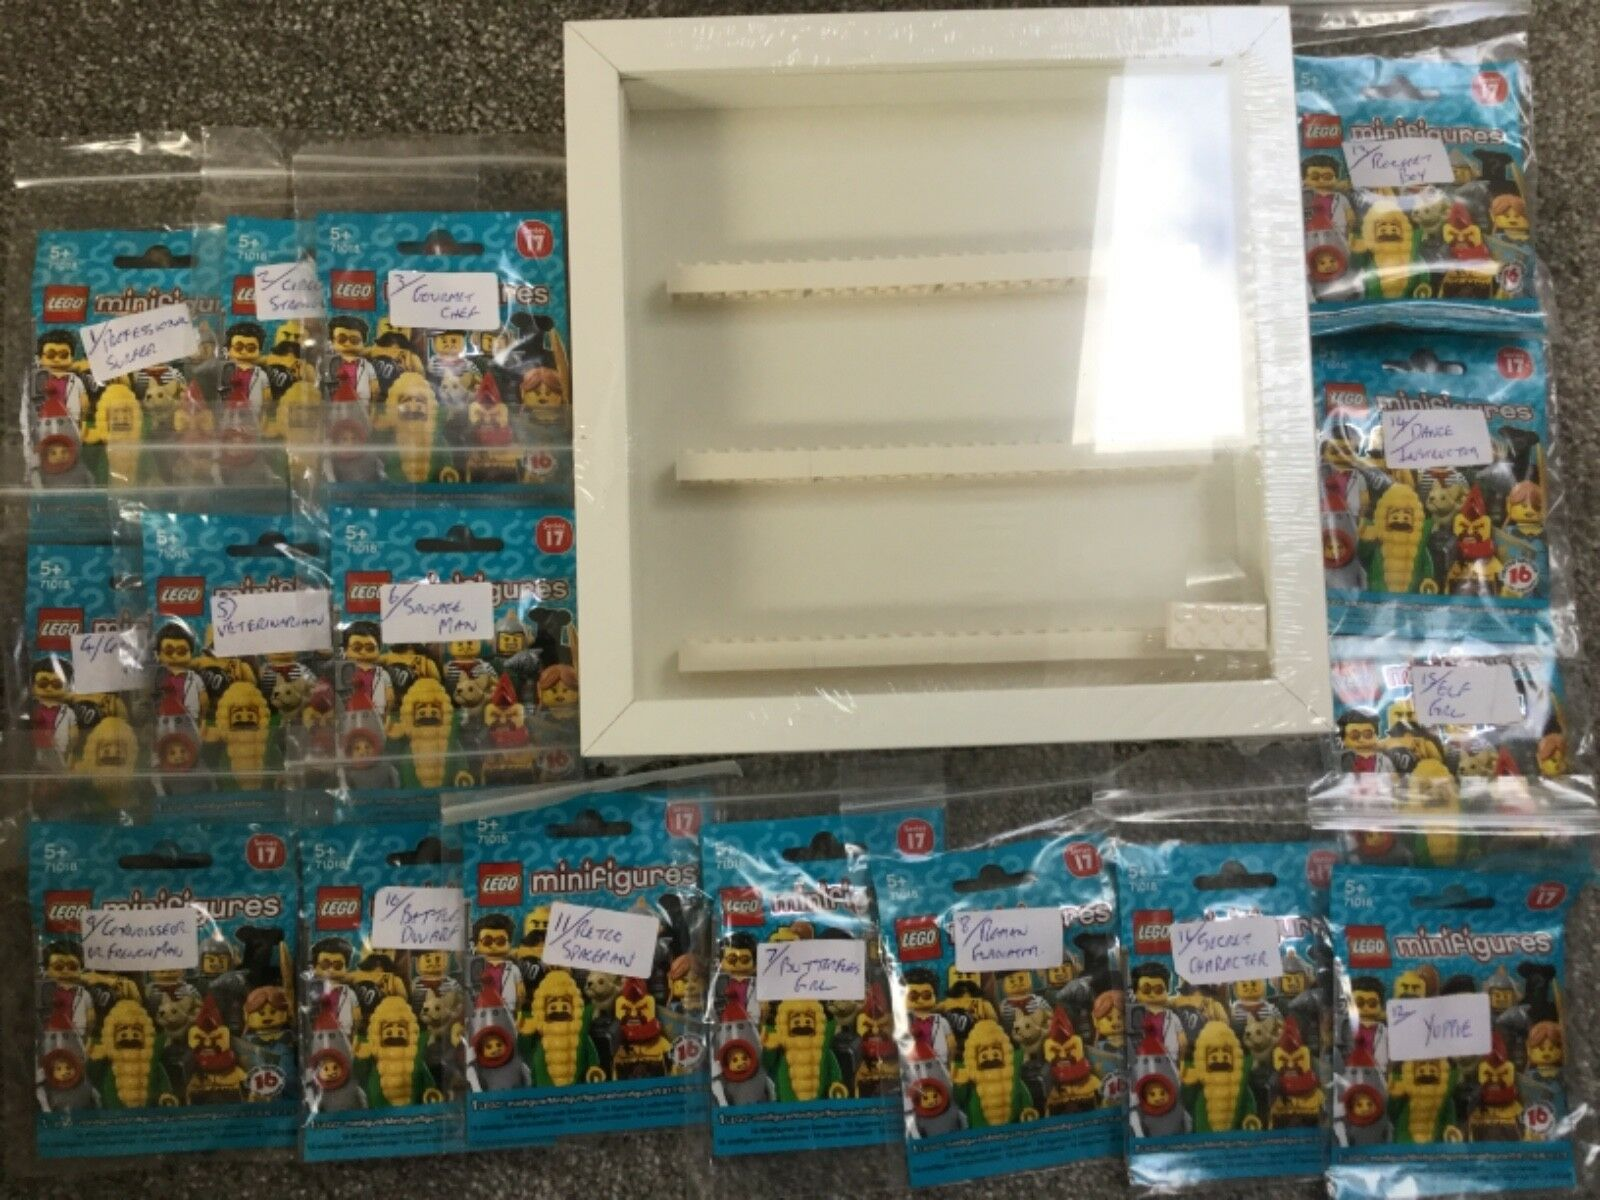 LEGO MINIFIGURES 71018 FULL SET WITH DISPLAY CASE NEW  GOOD CONDITION